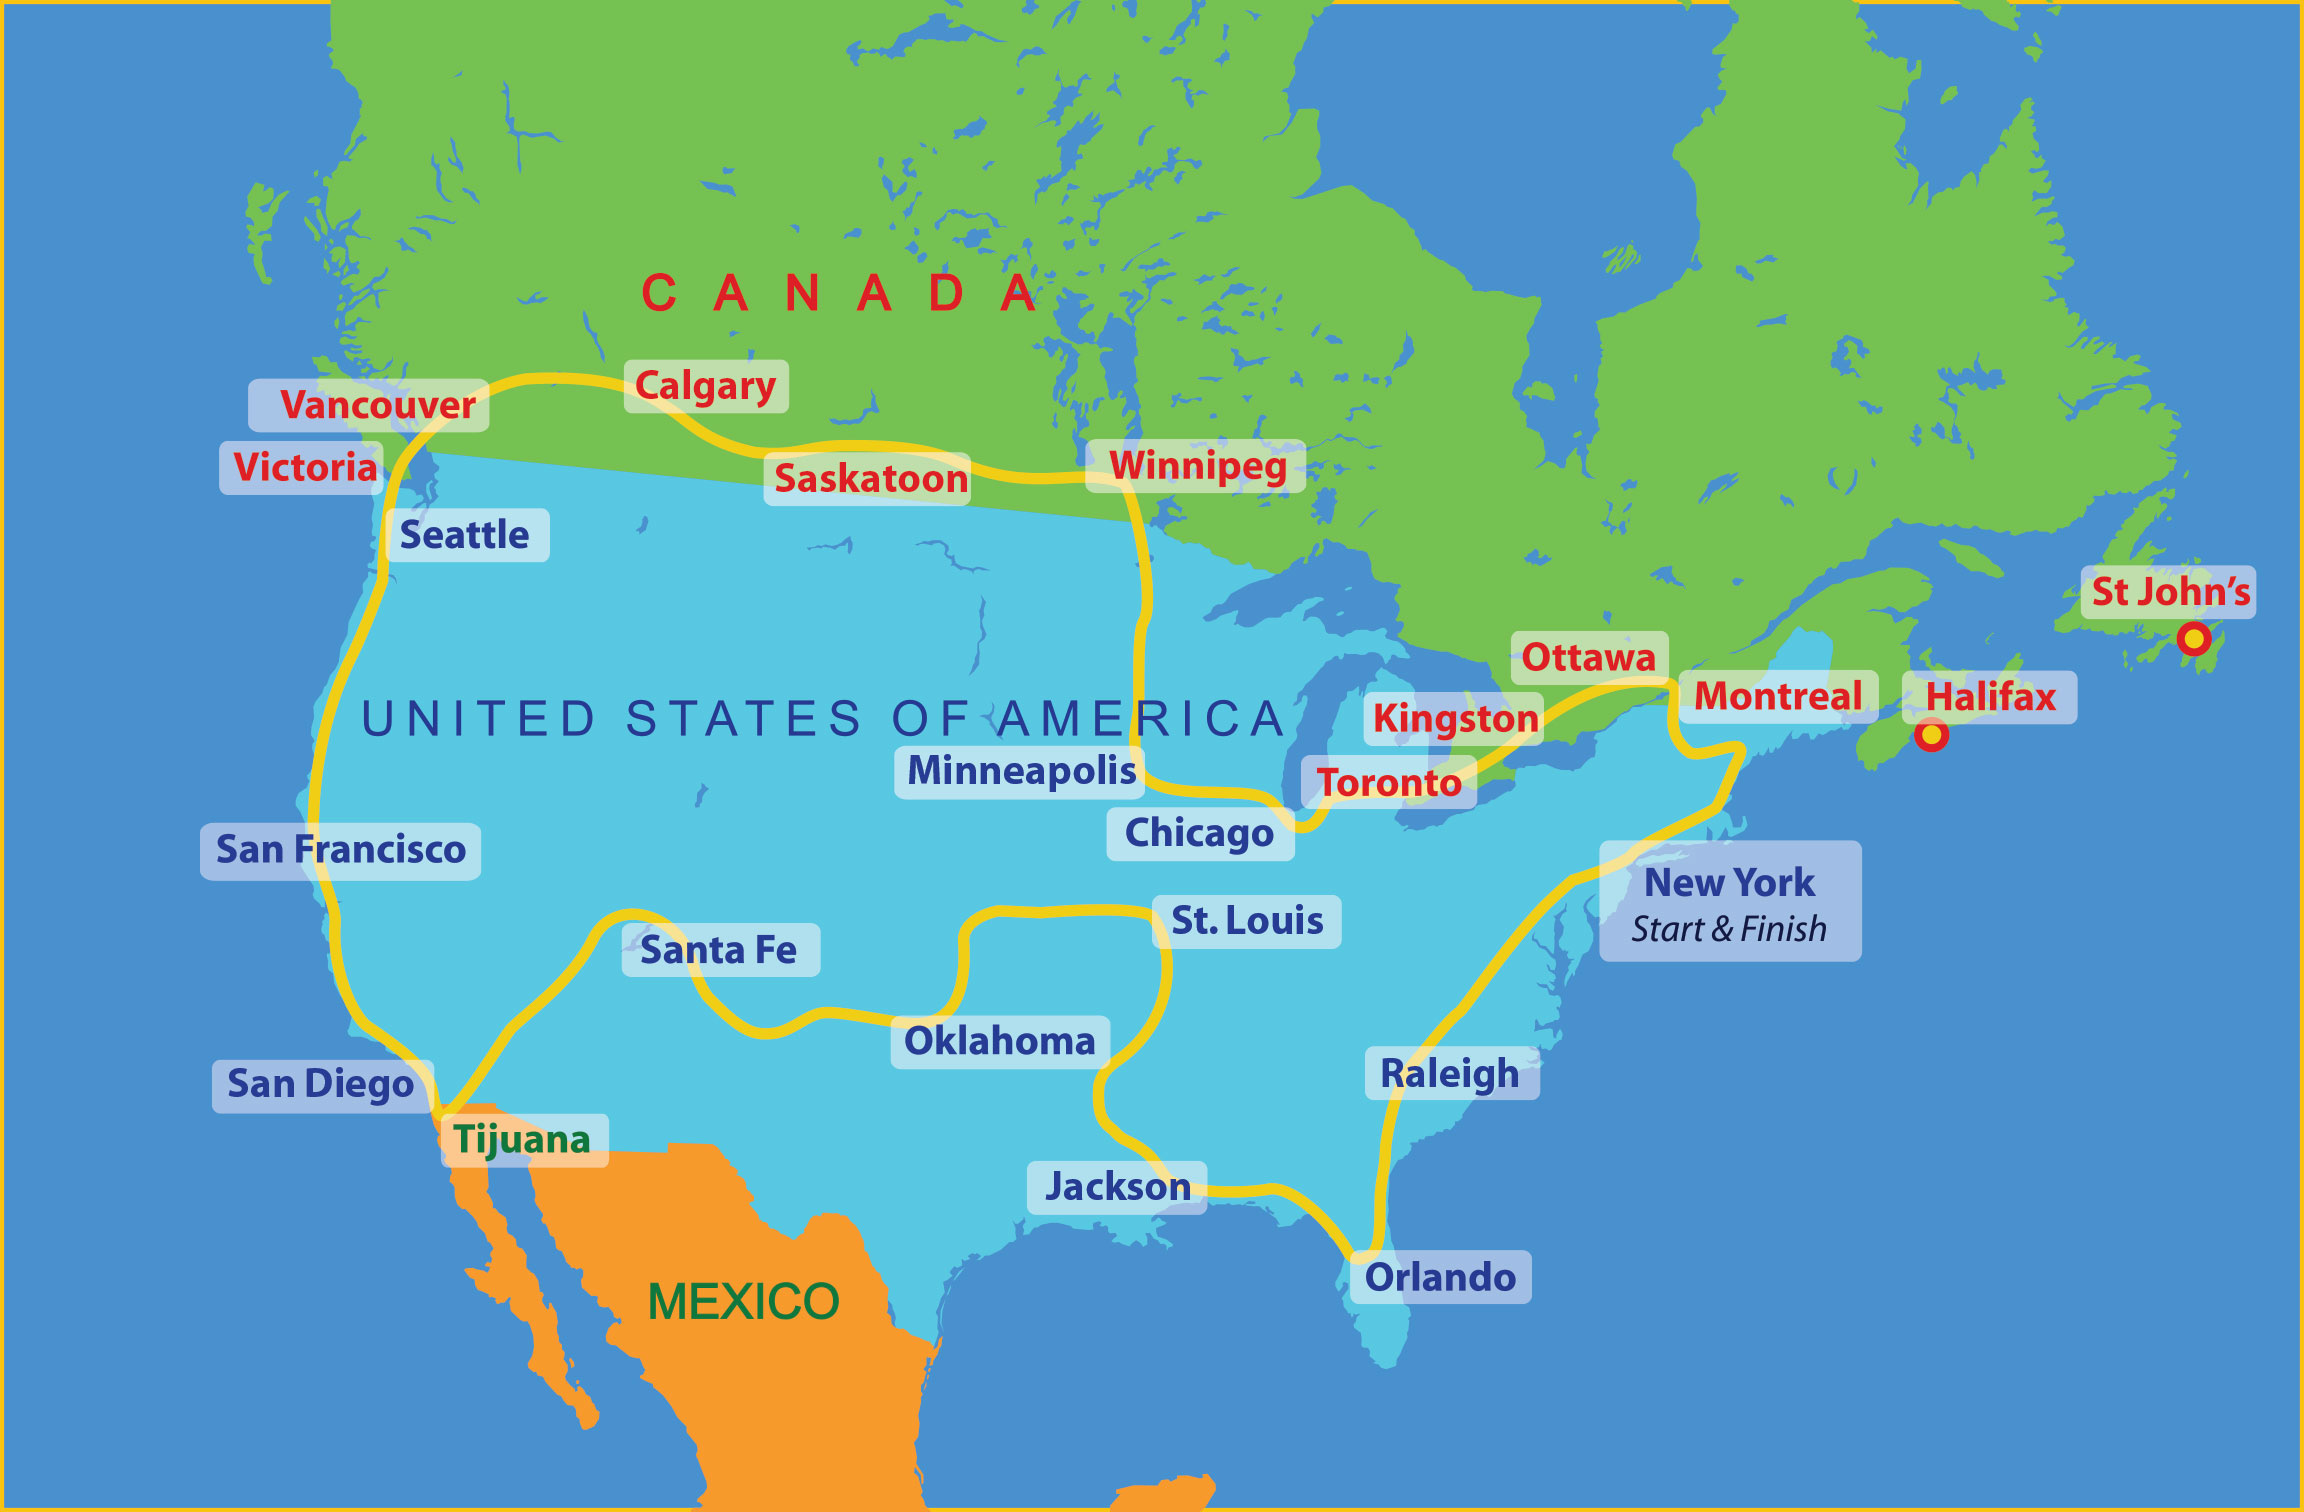 United States Of America  Route  The Sri Chinmoy Oneness - America map chicago